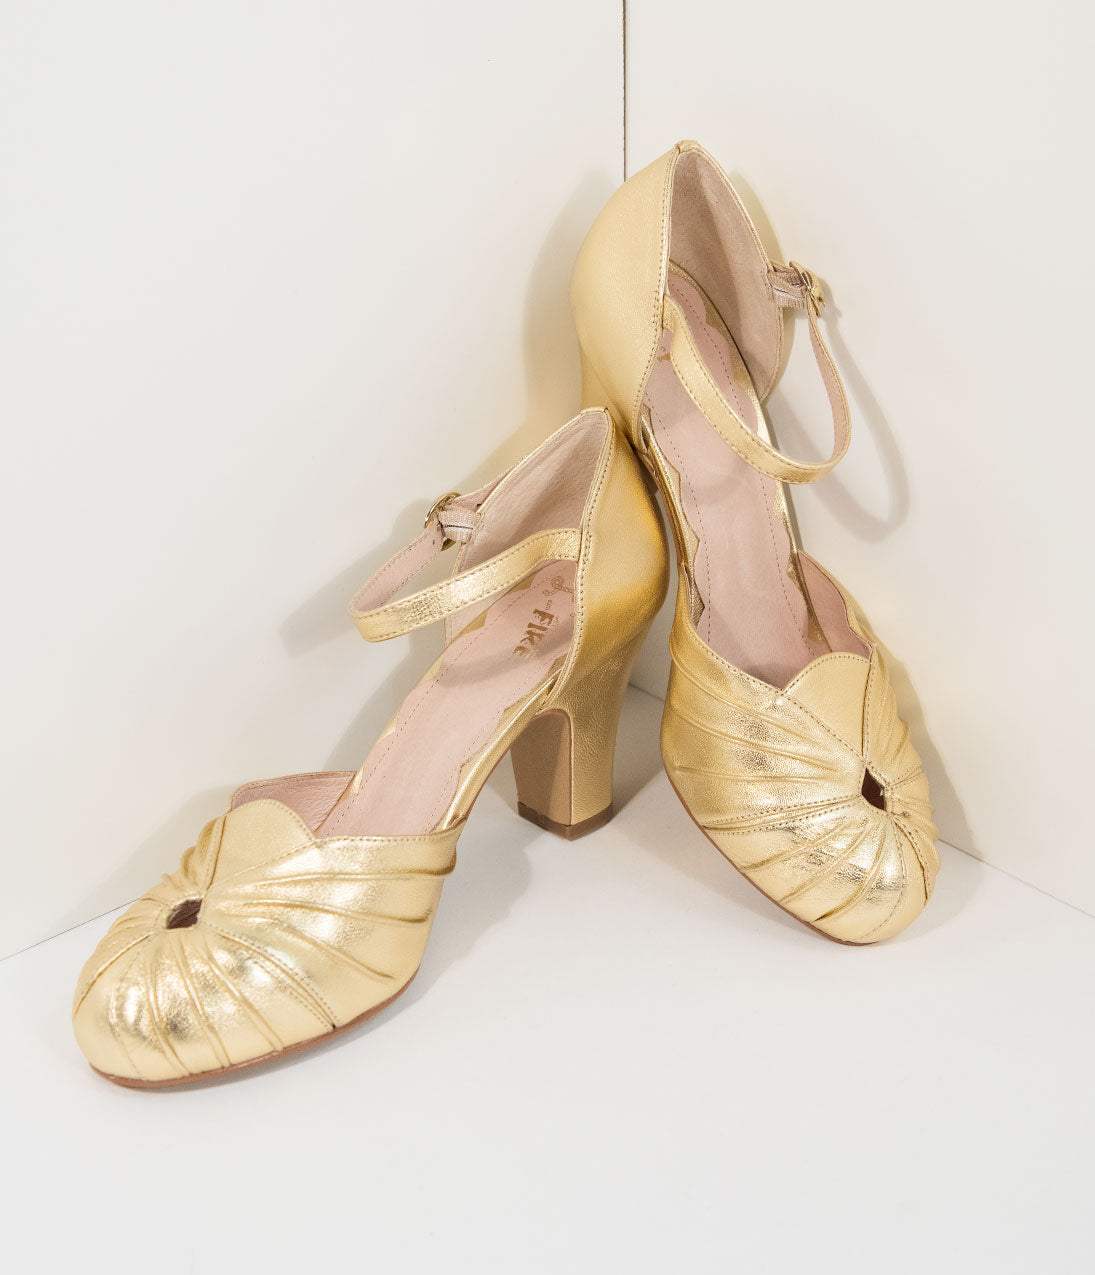 1940s Style Shoes, 40s Shoes Miss L Fire 1940S Style Gold Sparkle Keyhole Amber Heels $131.00 AT vintagedancer.com